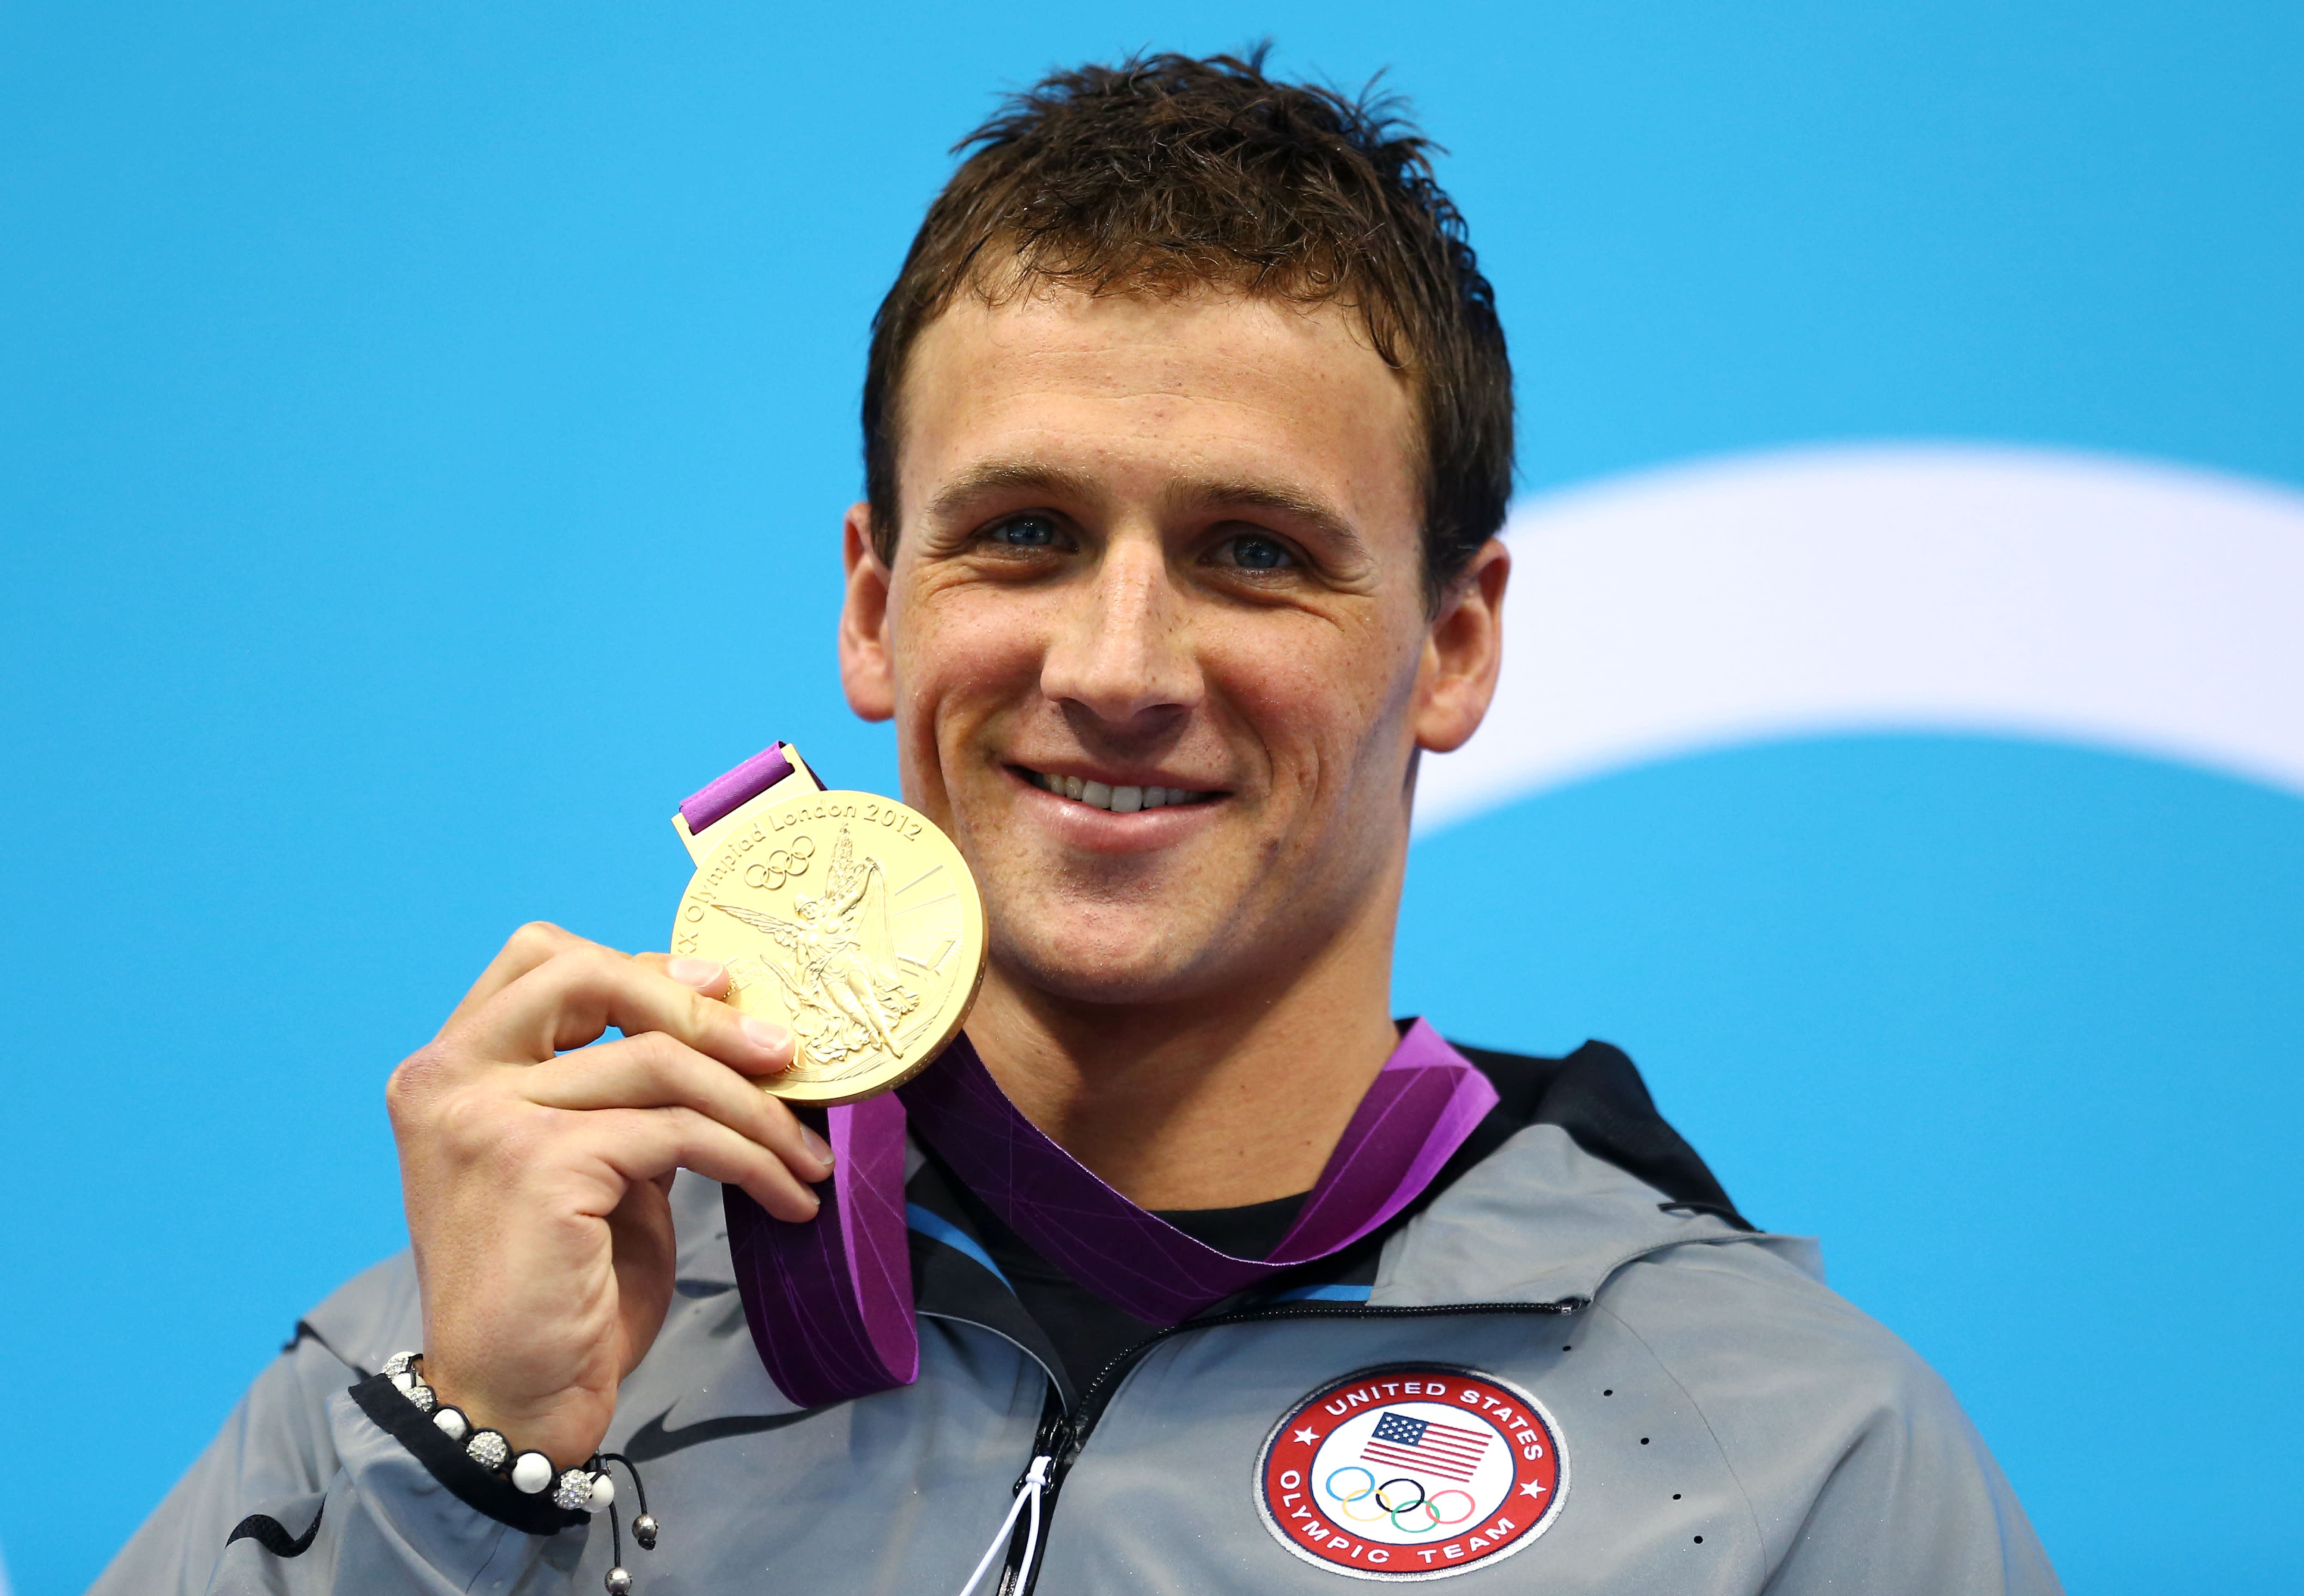 The money advice Olympic swimmer Ryan Lochte would tell his younger self